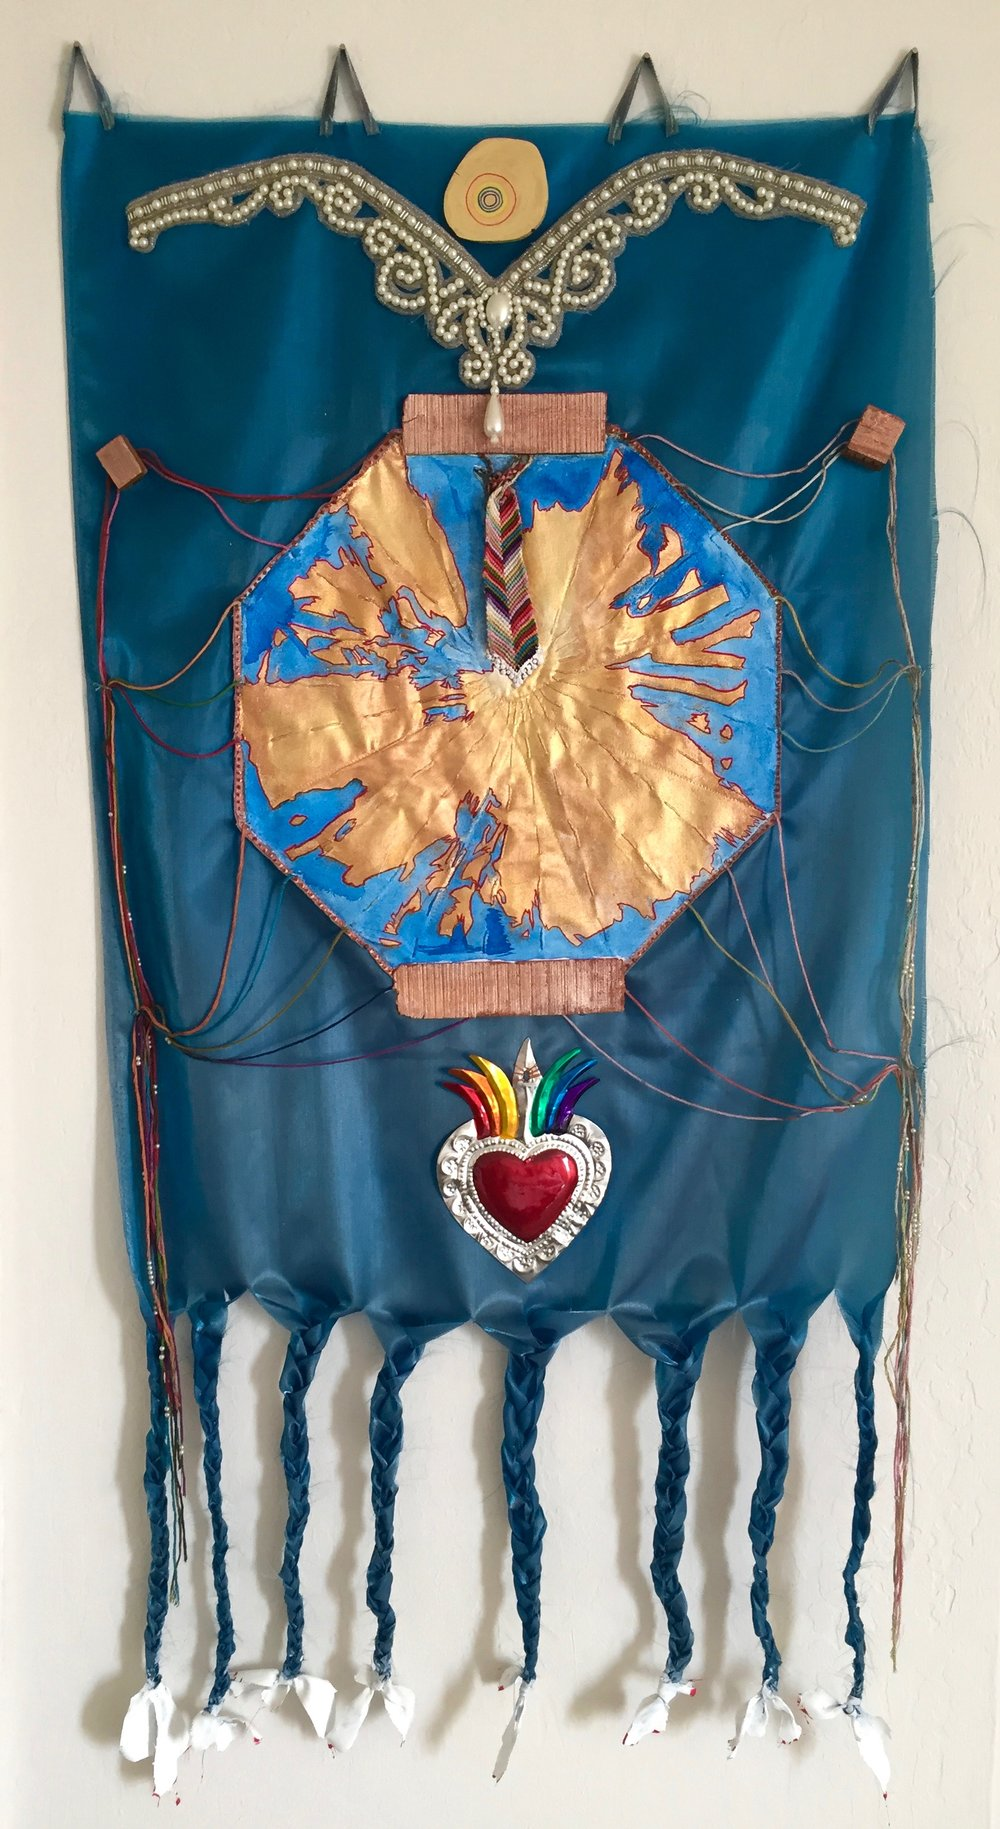 Banner , fabric, velvet, pearl appliqué, pearl beads, wood, found metal heart, embroidery floss, paint, 17 1/2 x 36 inches